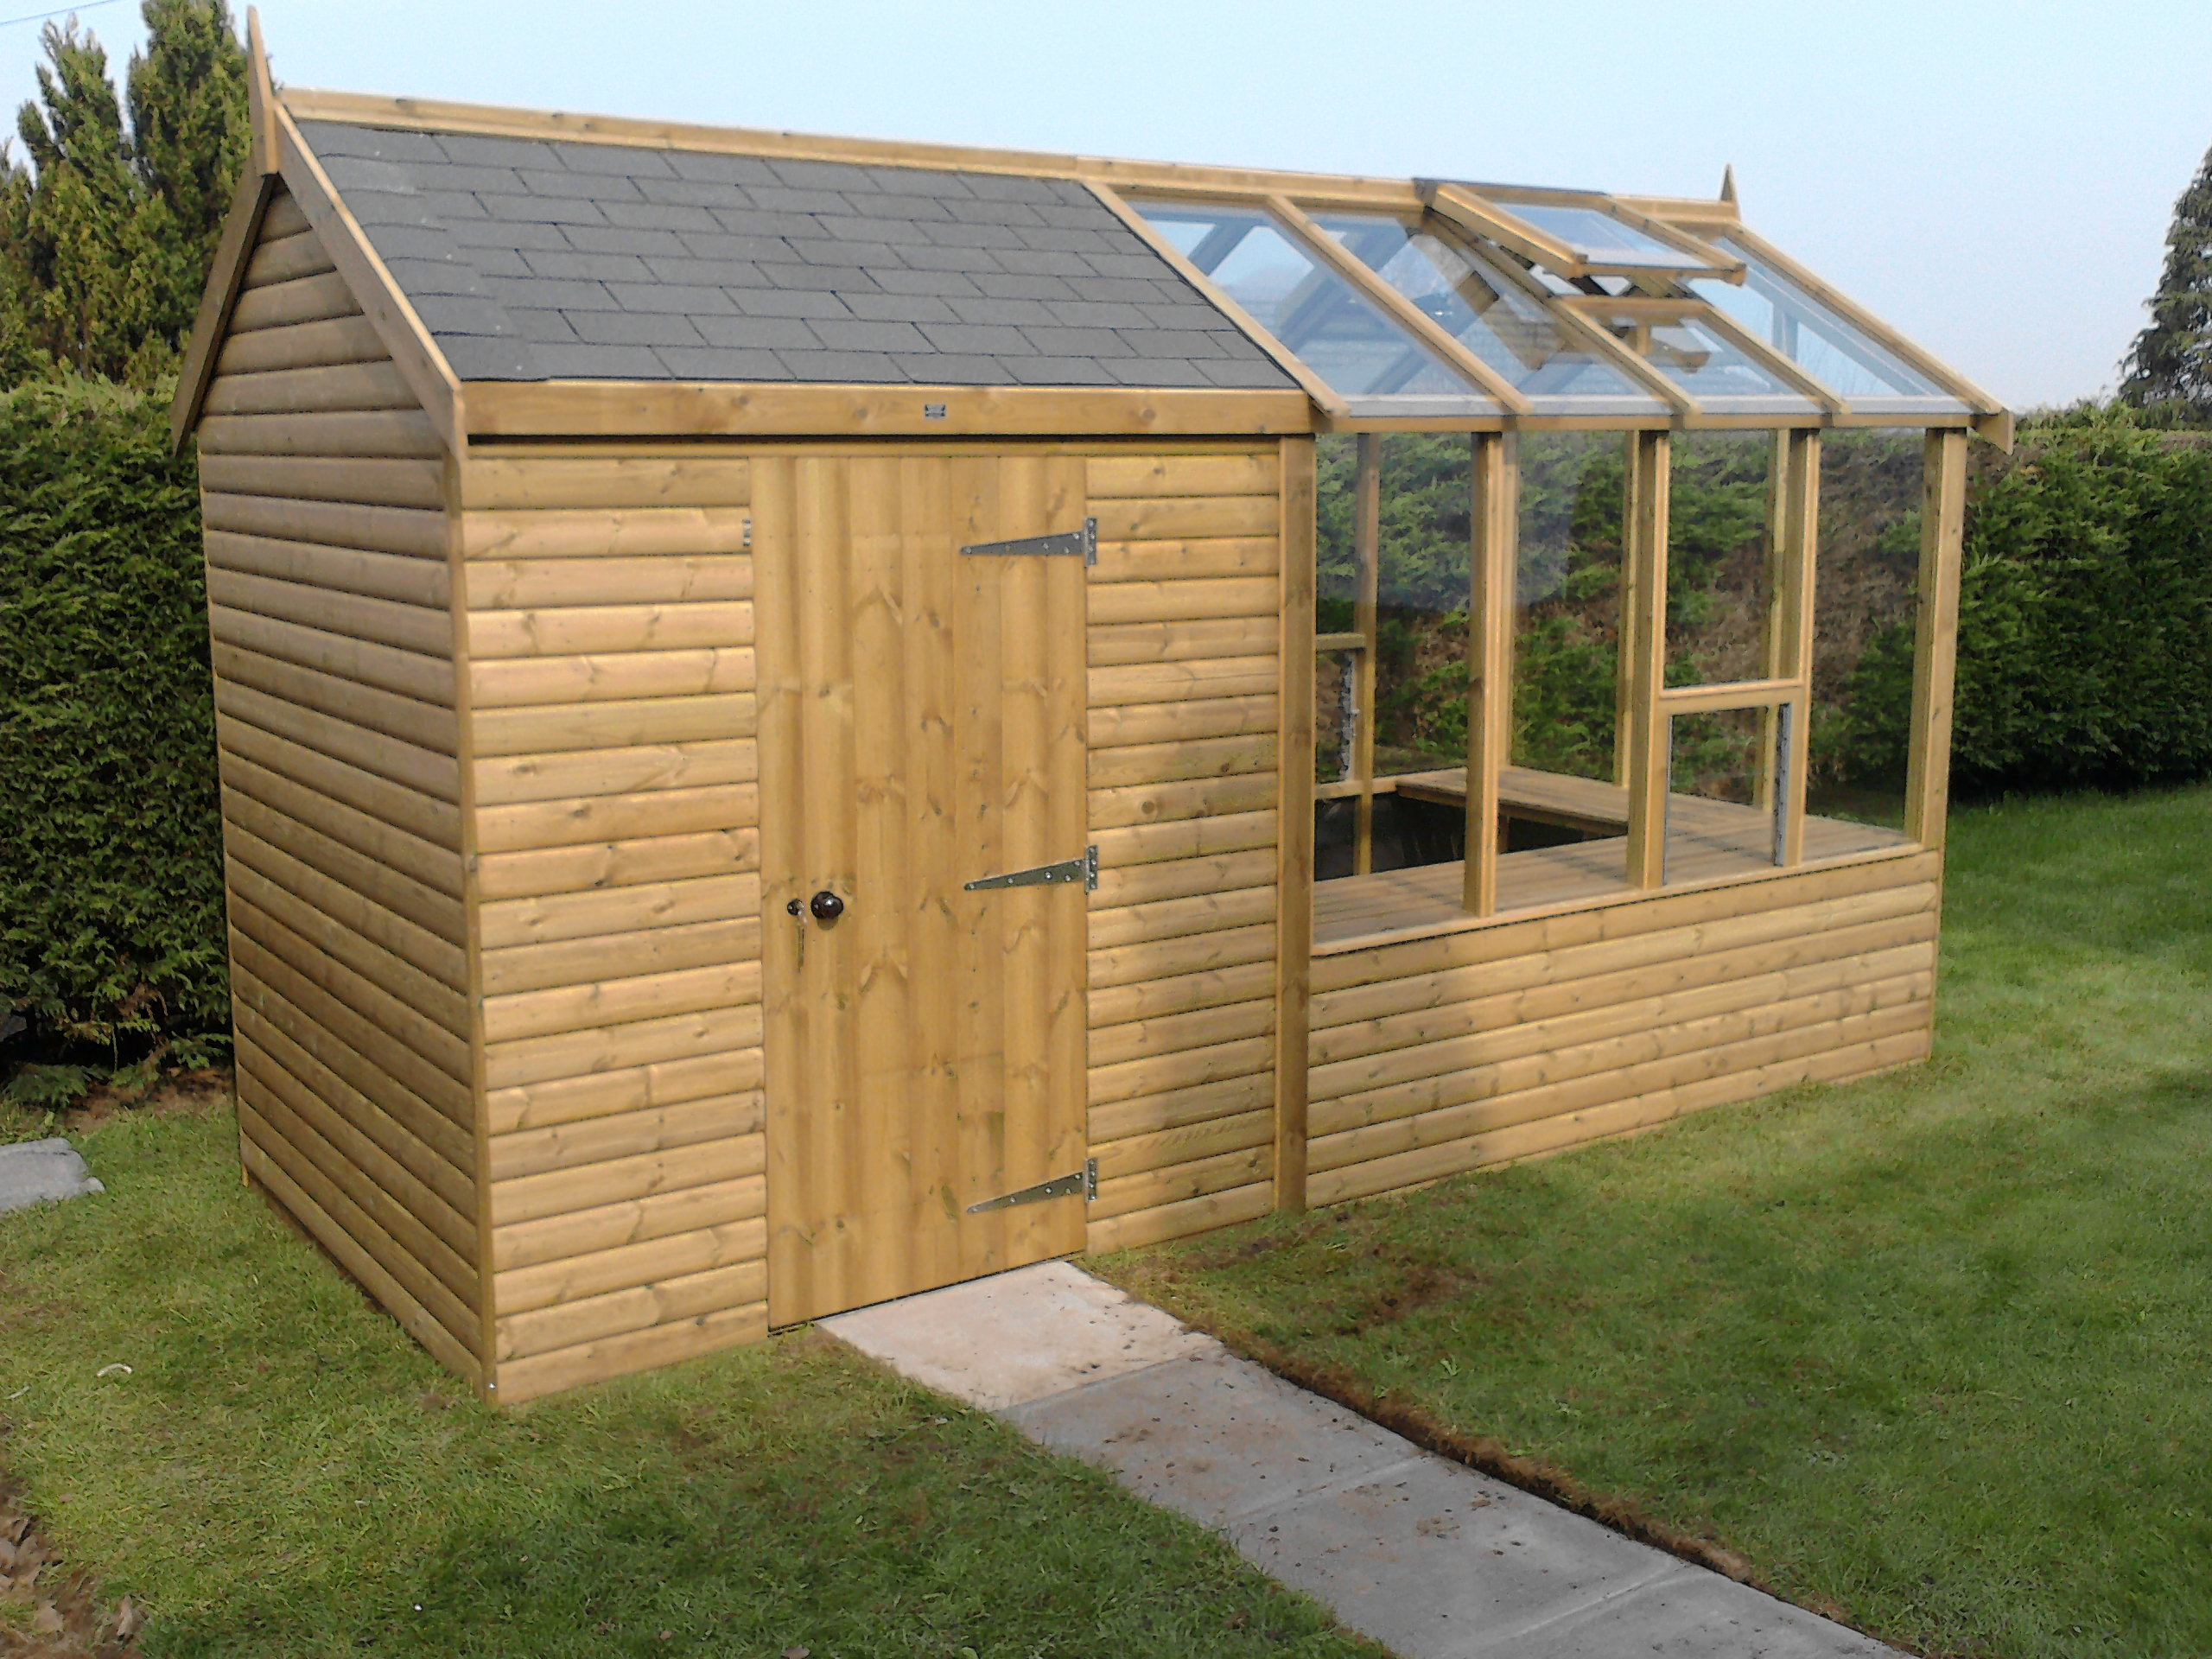 Greenhouse garden shed locating free shed plans on the for Shed design plans